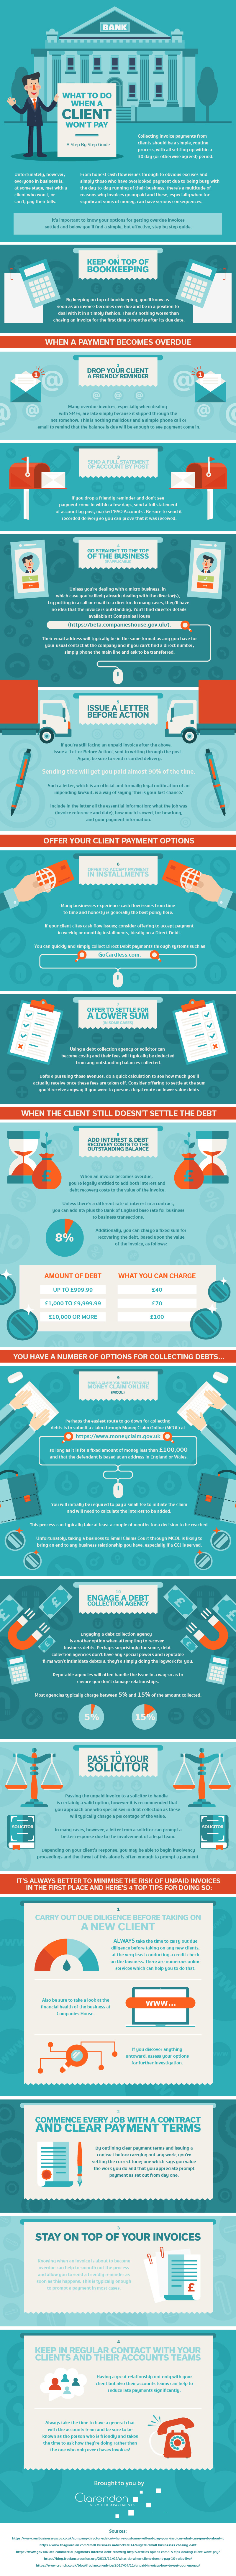 What to Do When a Client Won't Pay [Infographic]